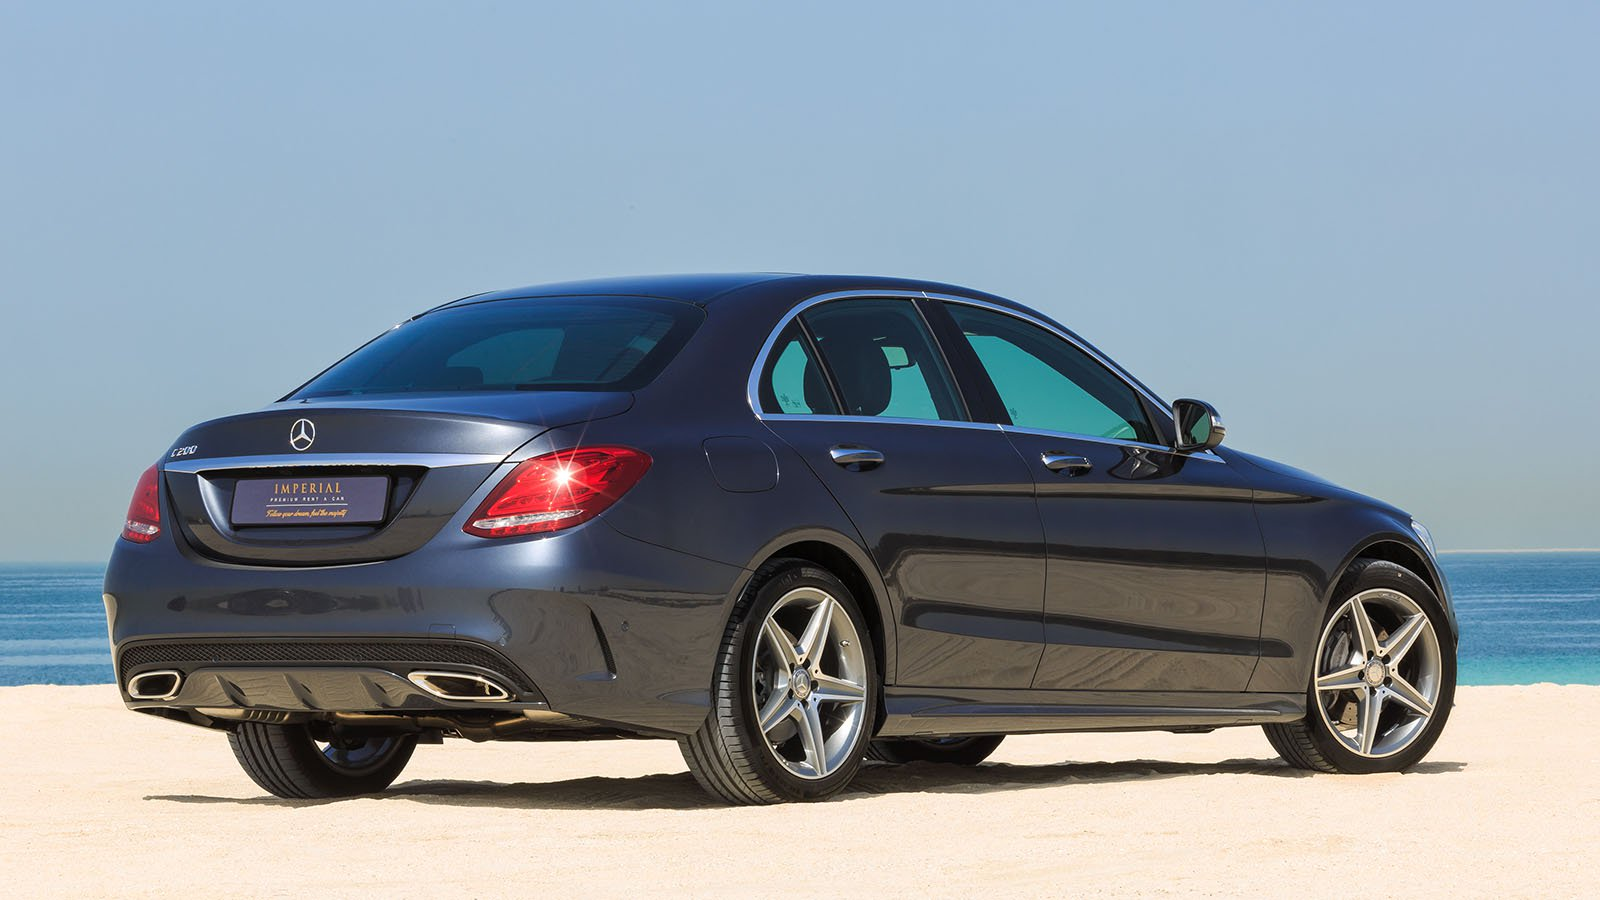 Mercedes-benz c200 photo - 8